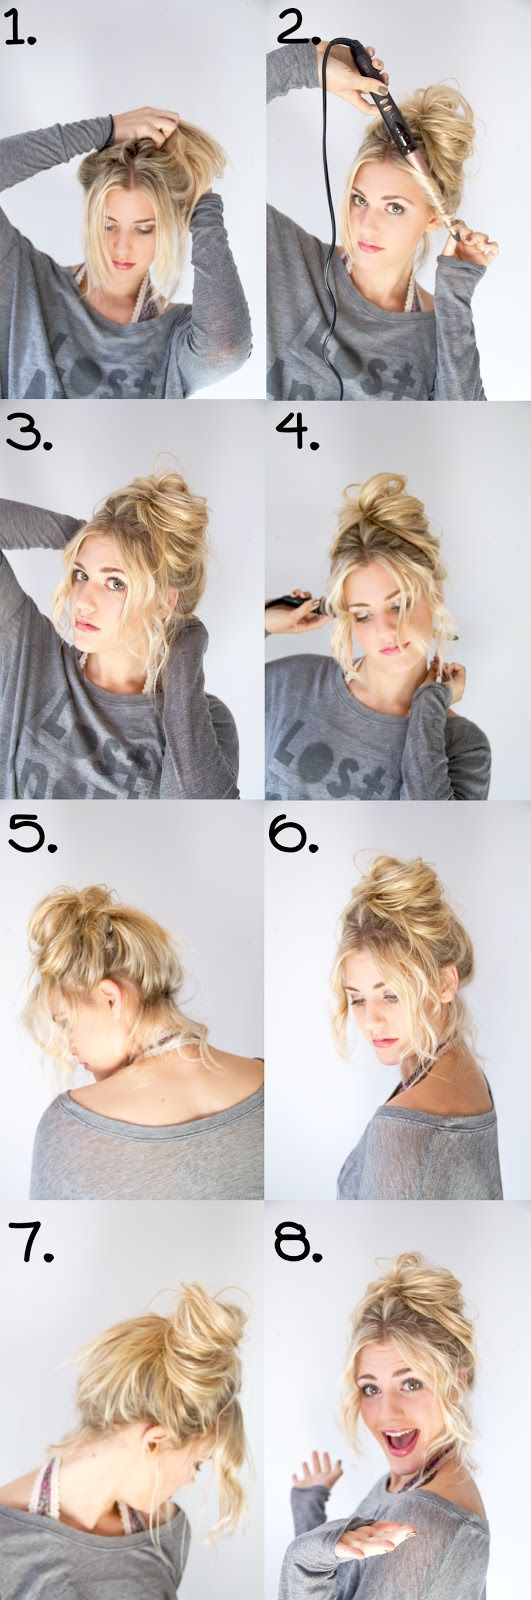 Good links on the website, especially the brunette's (Promise's) messy updo tutorial